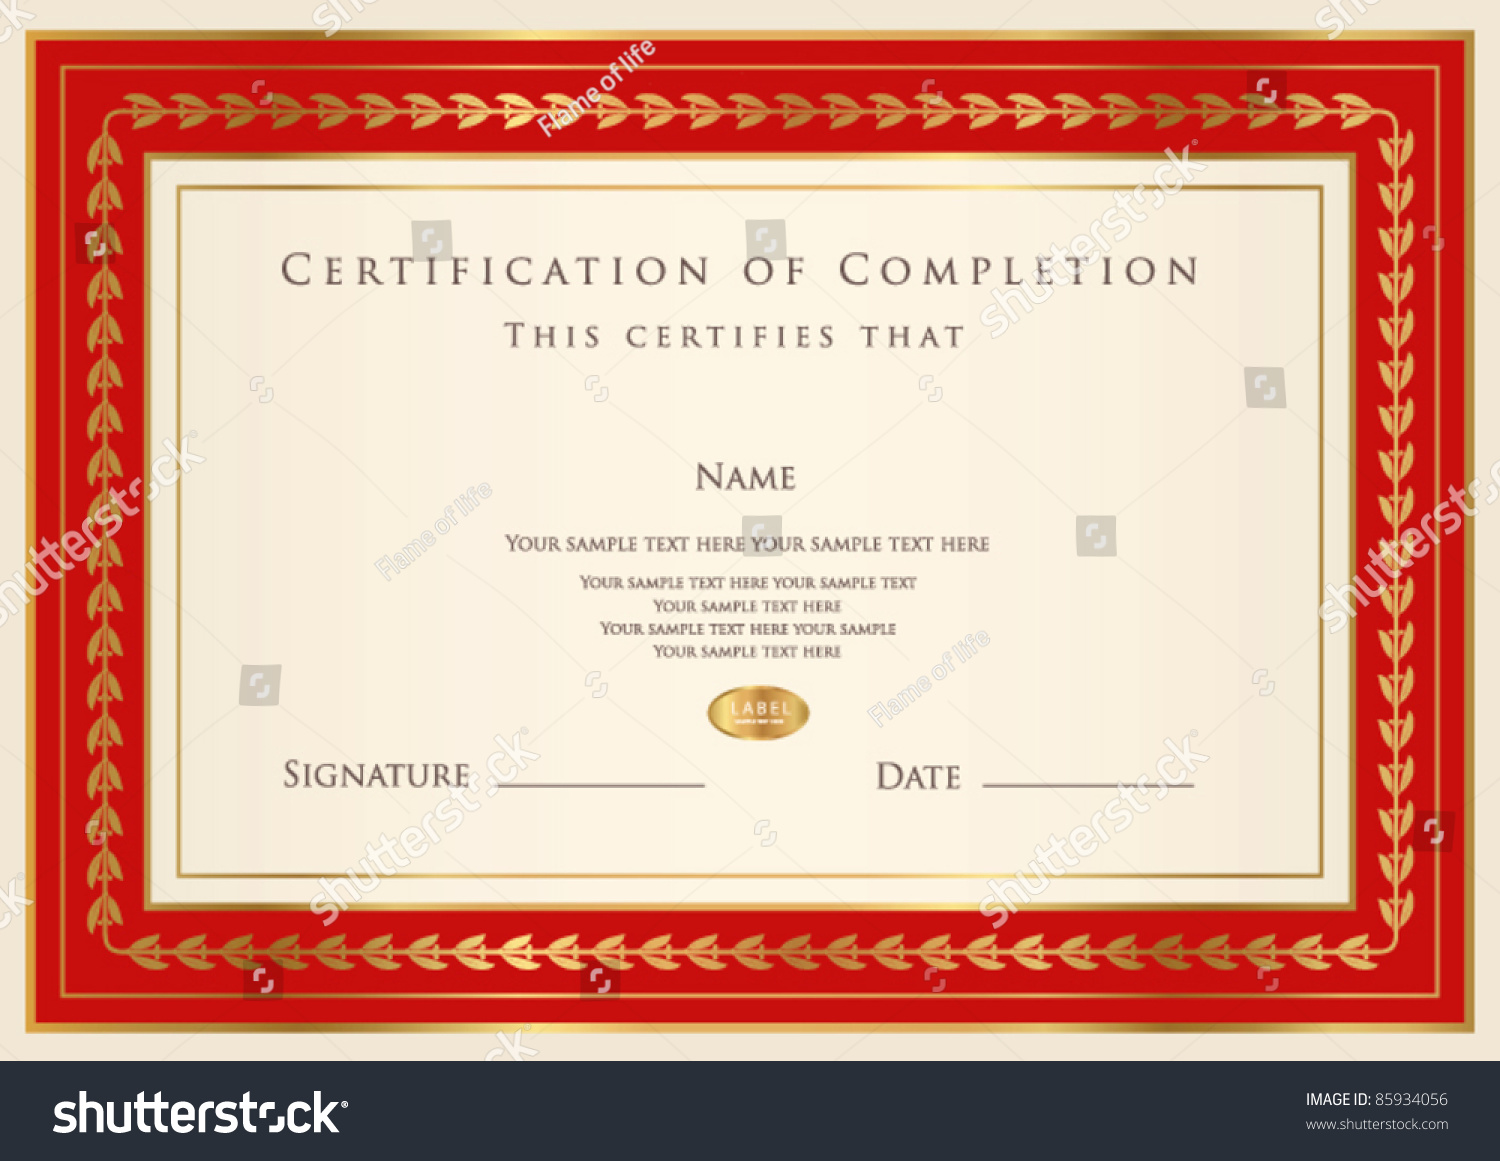 Blank Certificates Of Completion Of Completion10 Free Printable – Certificate of Completion Template Free